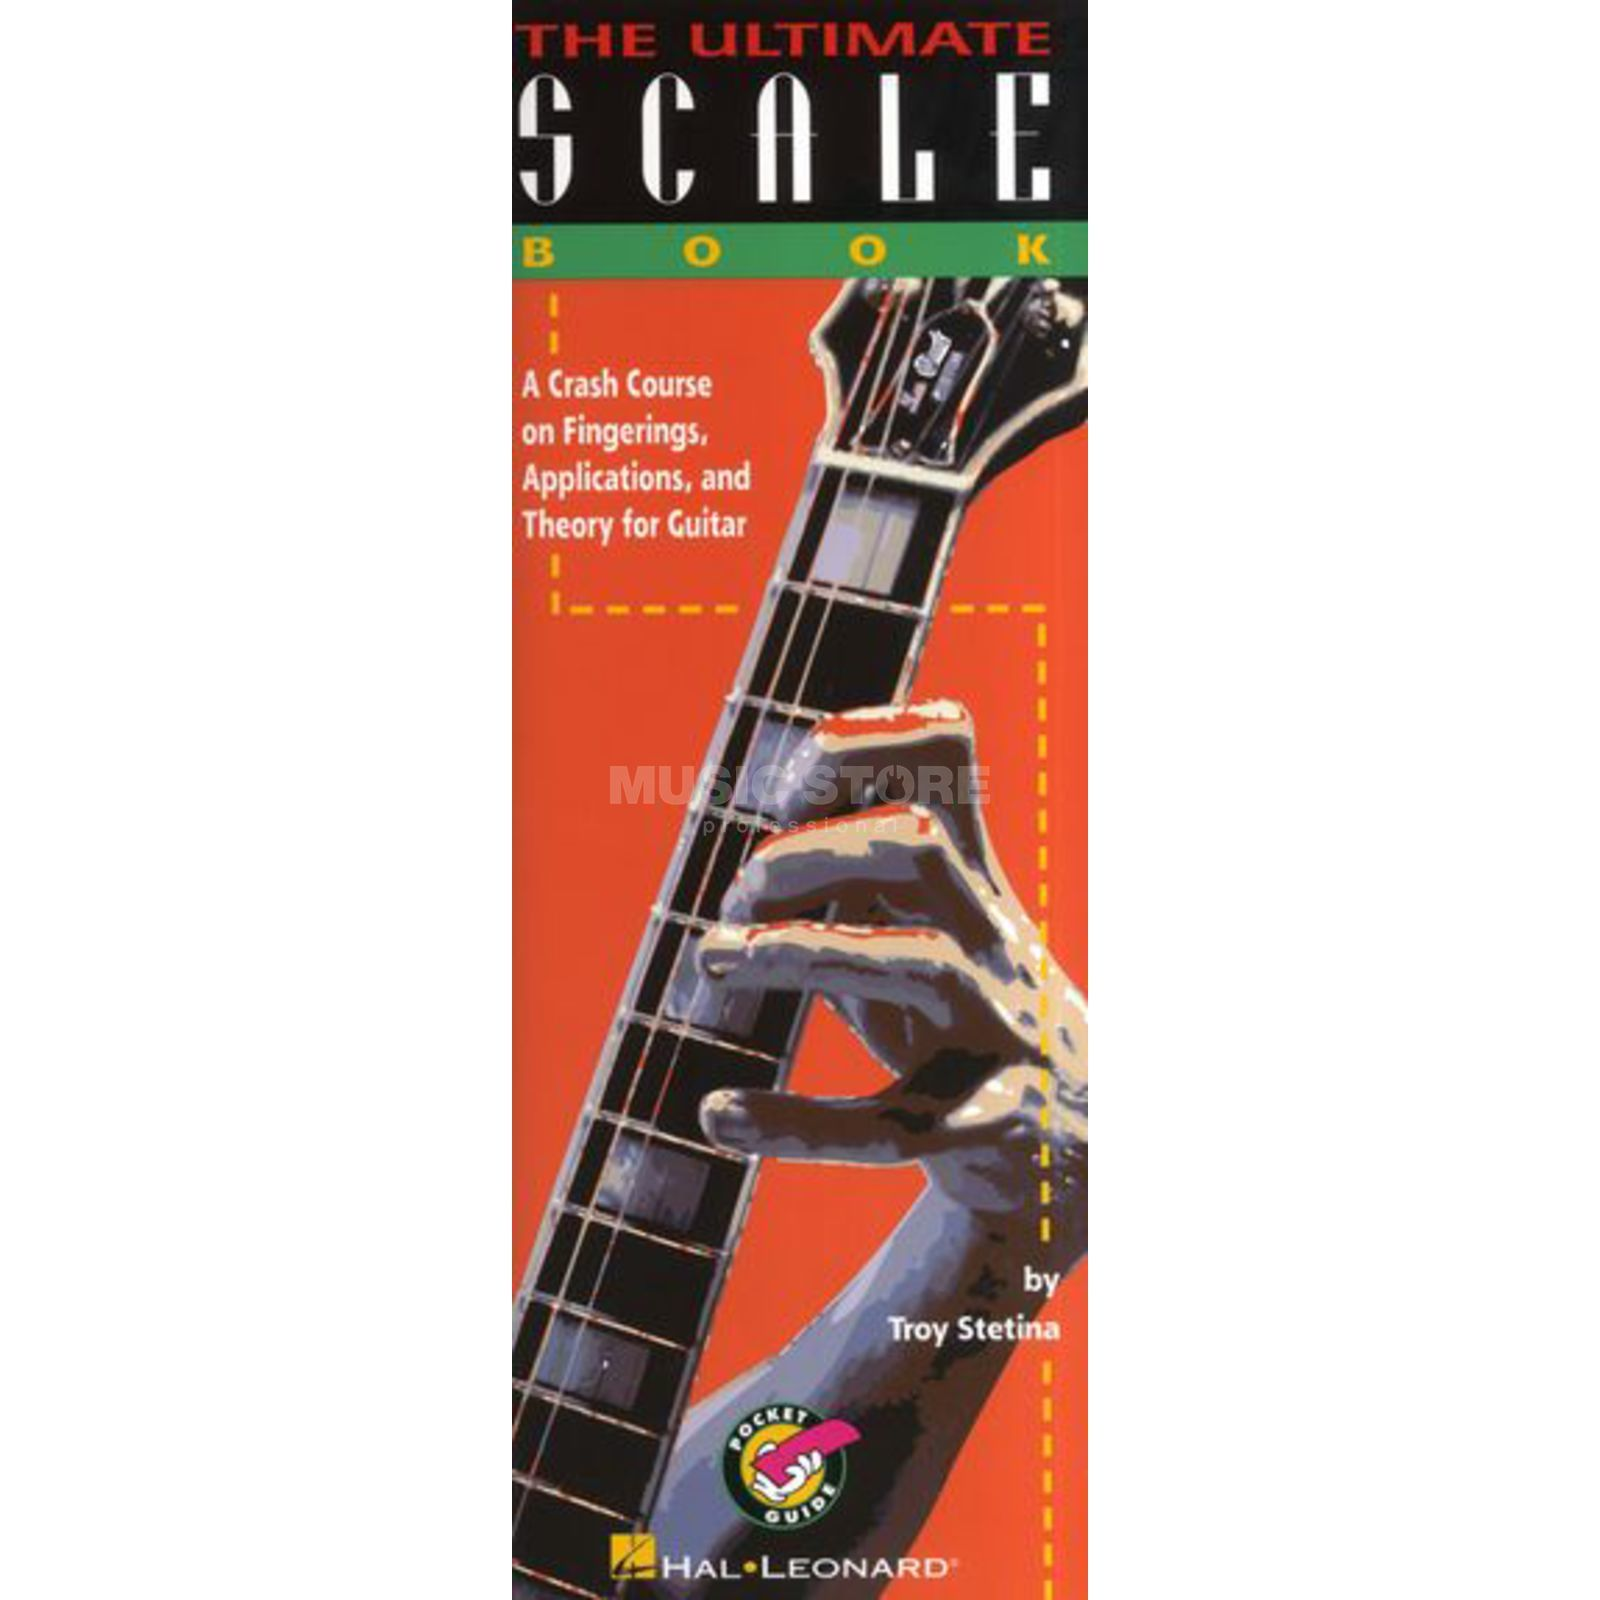 Hal Leonard Troy Stetina: The Ultimate Scale Book Produktbillede